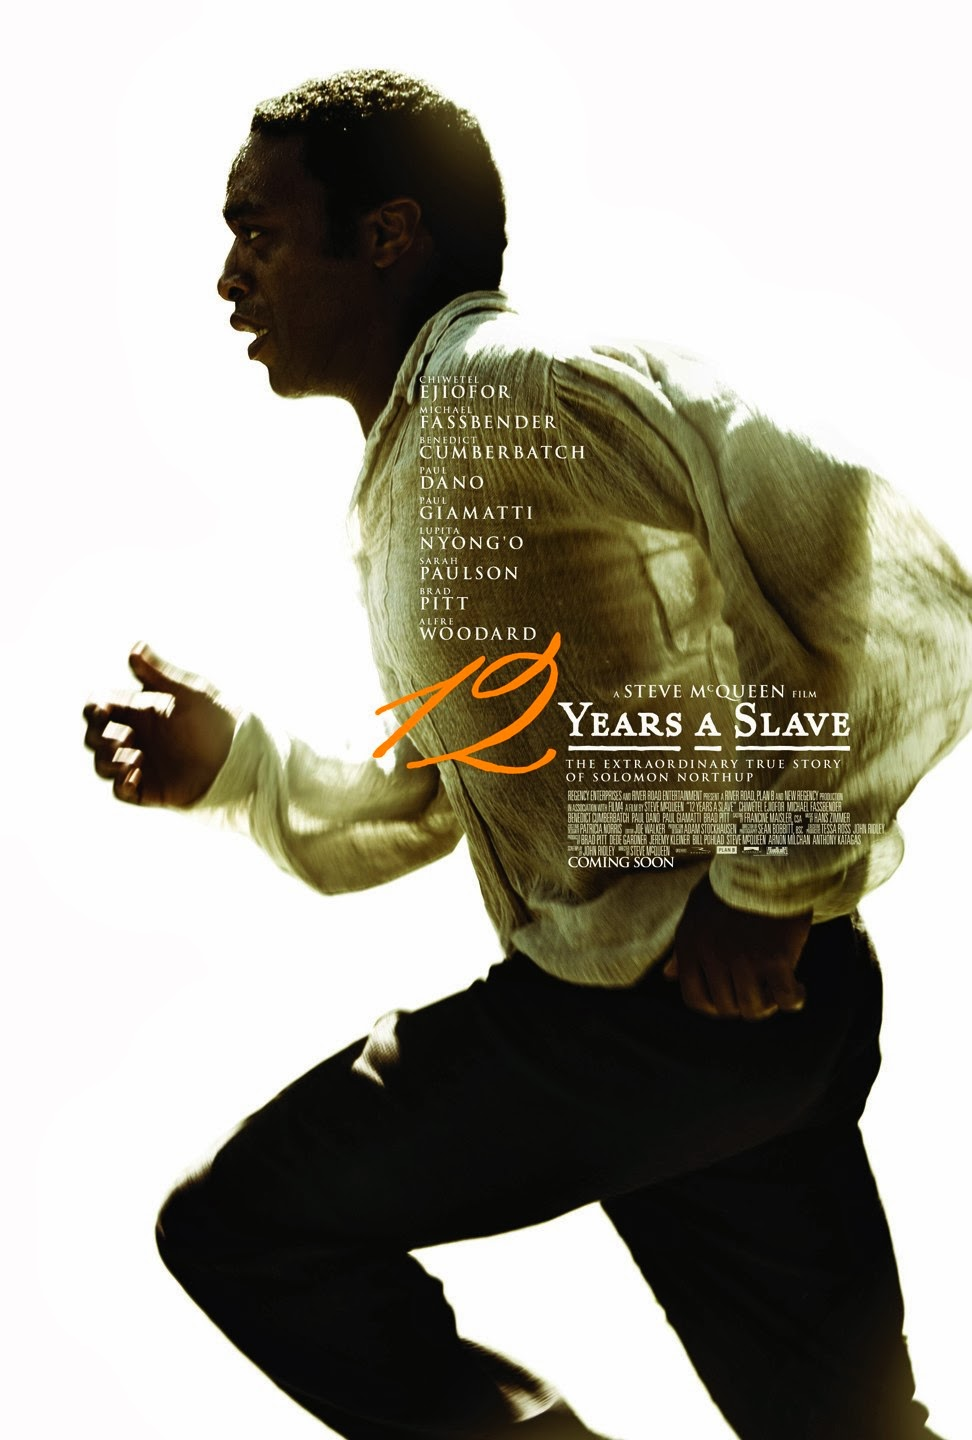 12 years a slave analysis Patsey's plea: black women's survival in '12 years a slave'  however, twelve  years a slave does something that  in the final analysis, it's all about  collectively making your own movies and creating your own award.